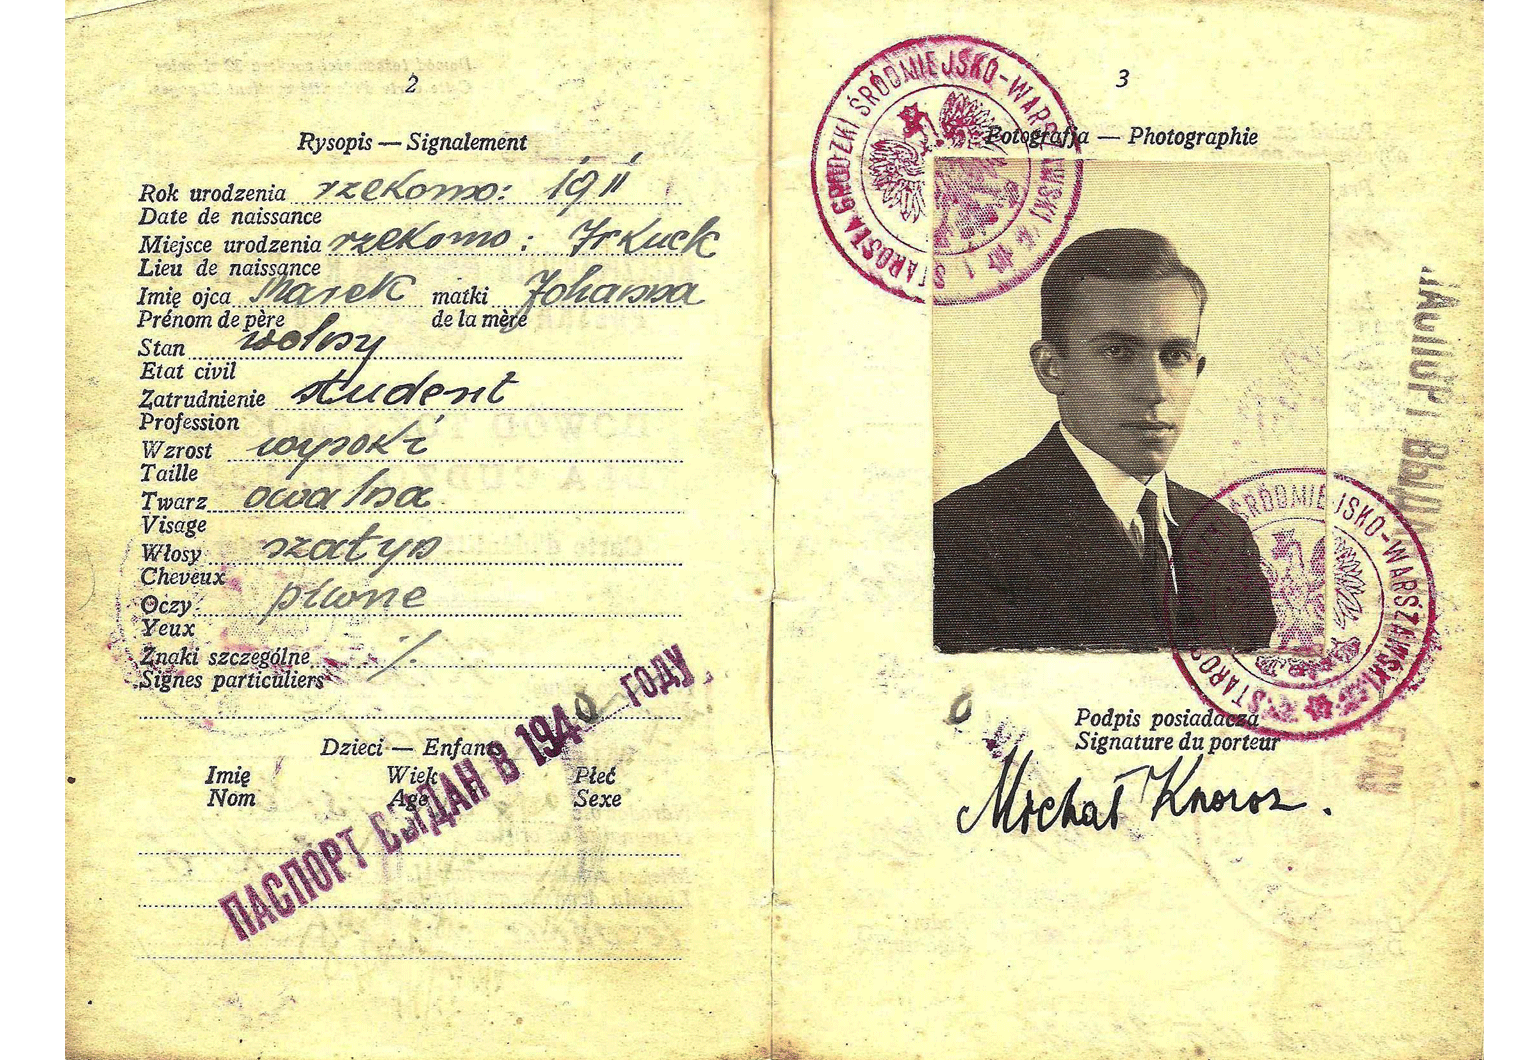 WW2 travel document Poland